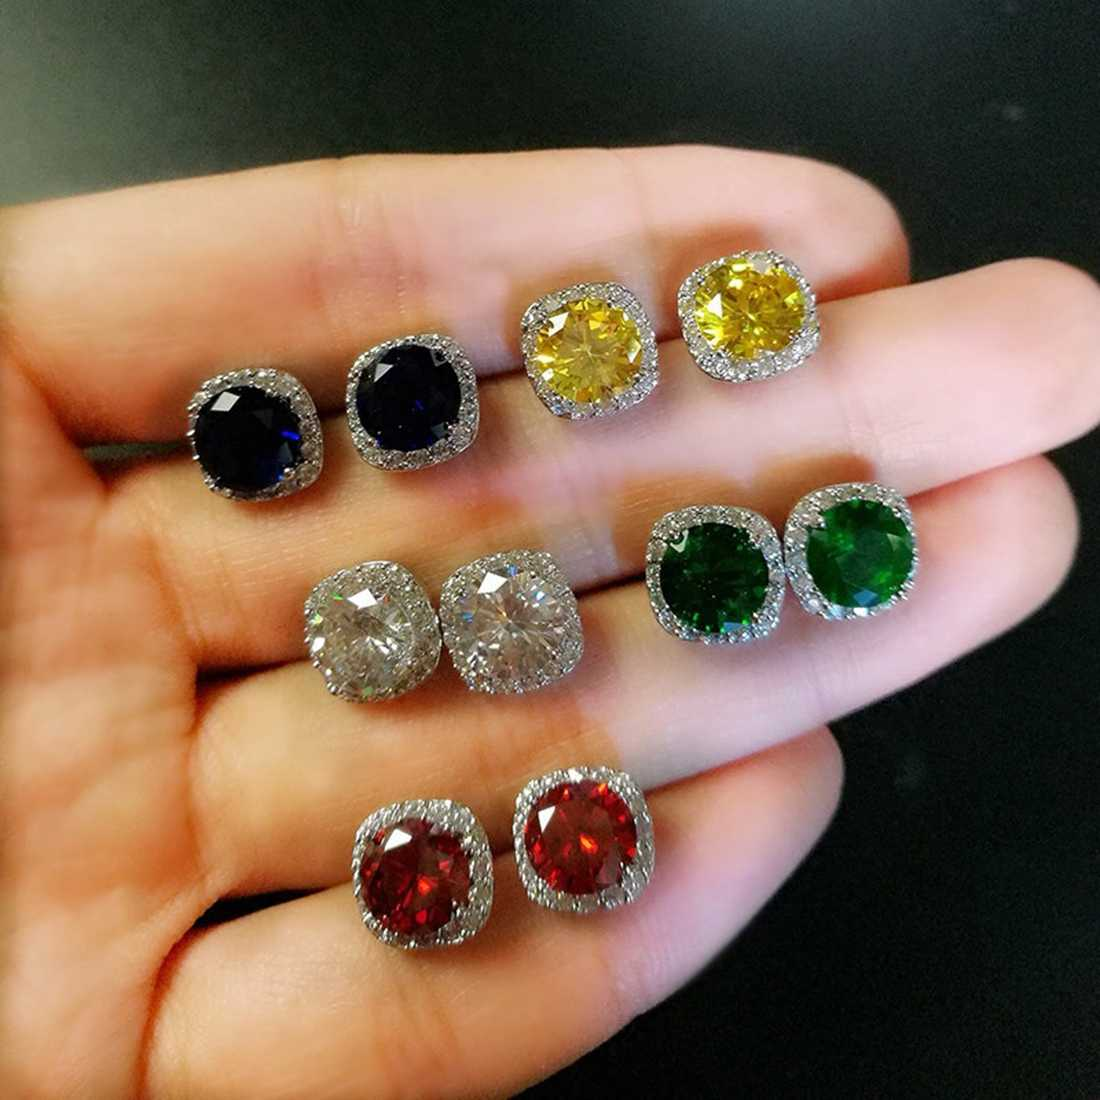 5 Color Blue Red Yellow Green White Big Zircon Stone Silver Stud Earrings for Women Fashion Jewelry Valentine's Day Gift